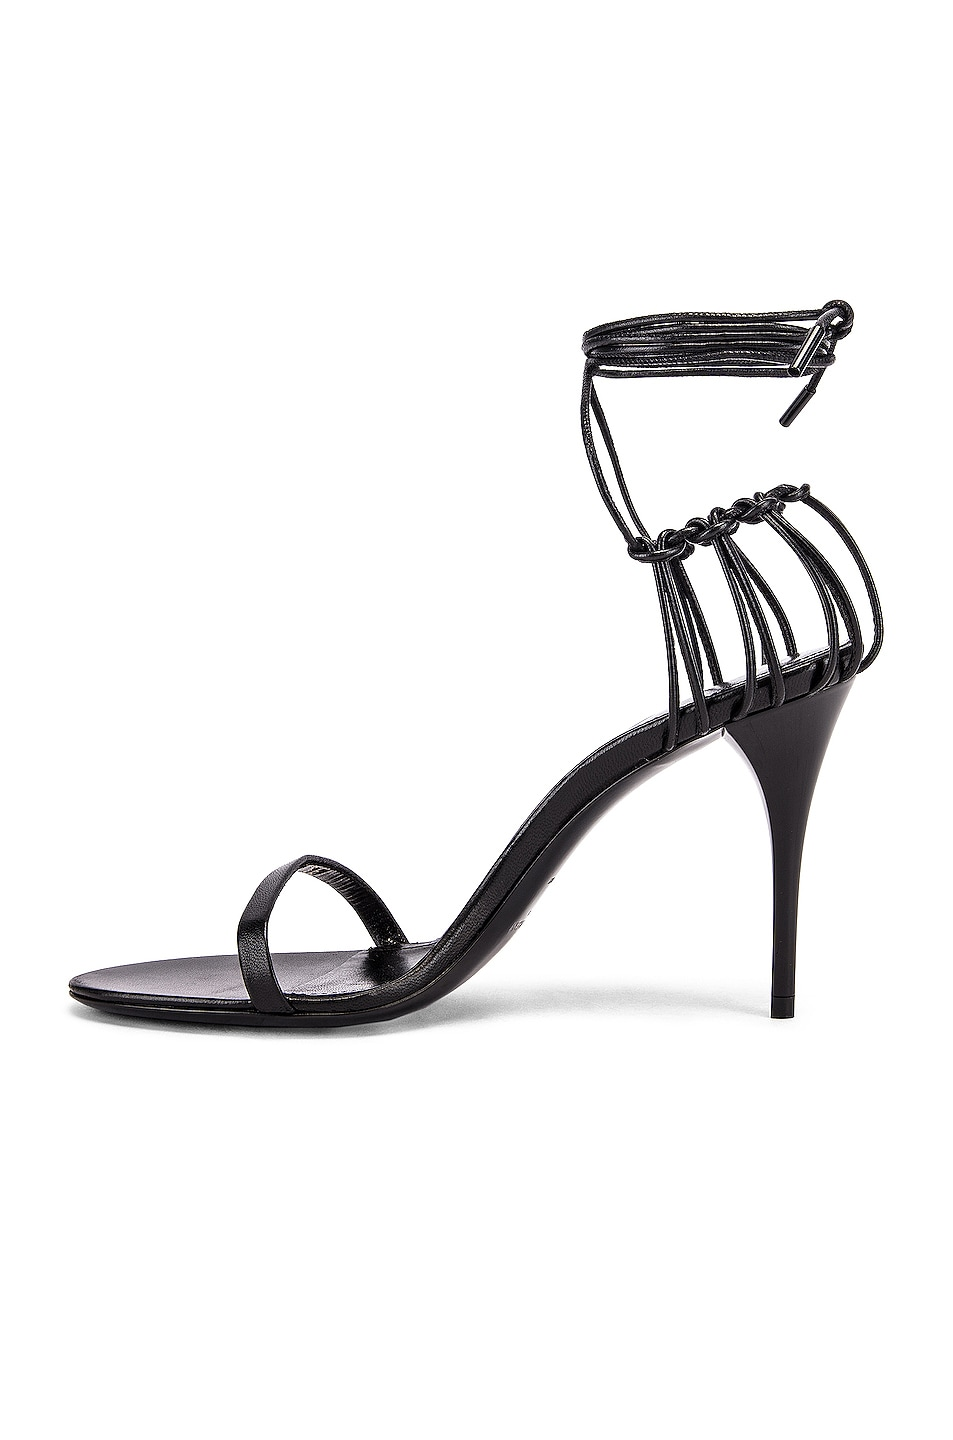 Image 5 of Saint Laurent Lexi Sandals in Black